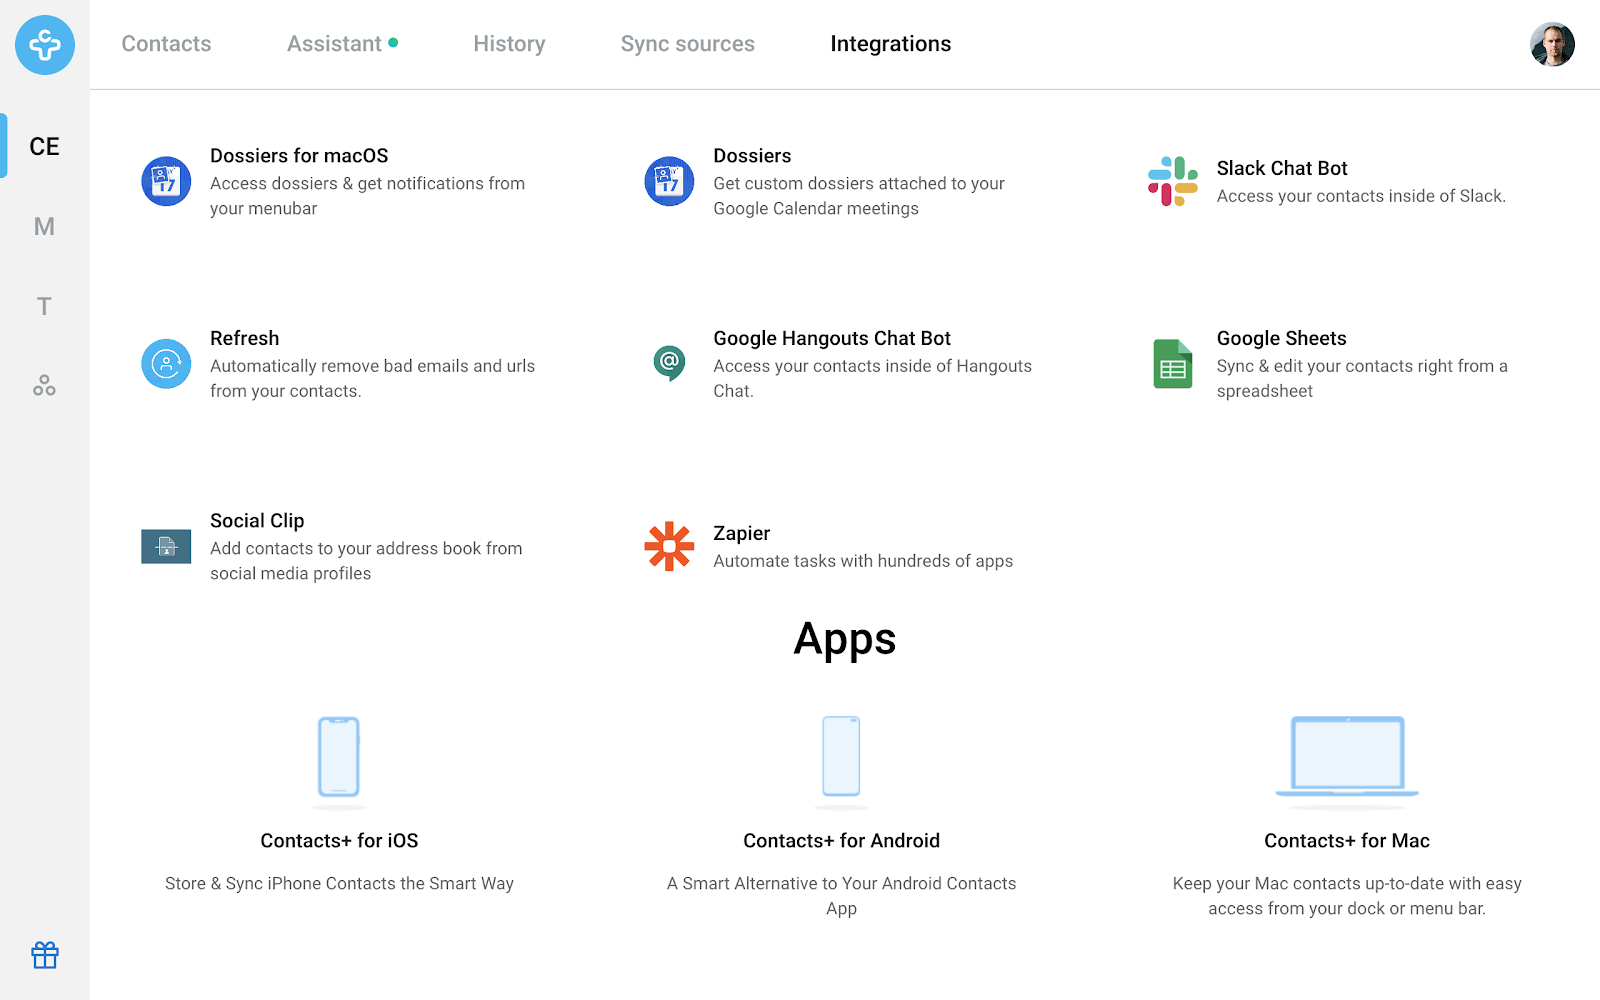 Contacts+ Integrations